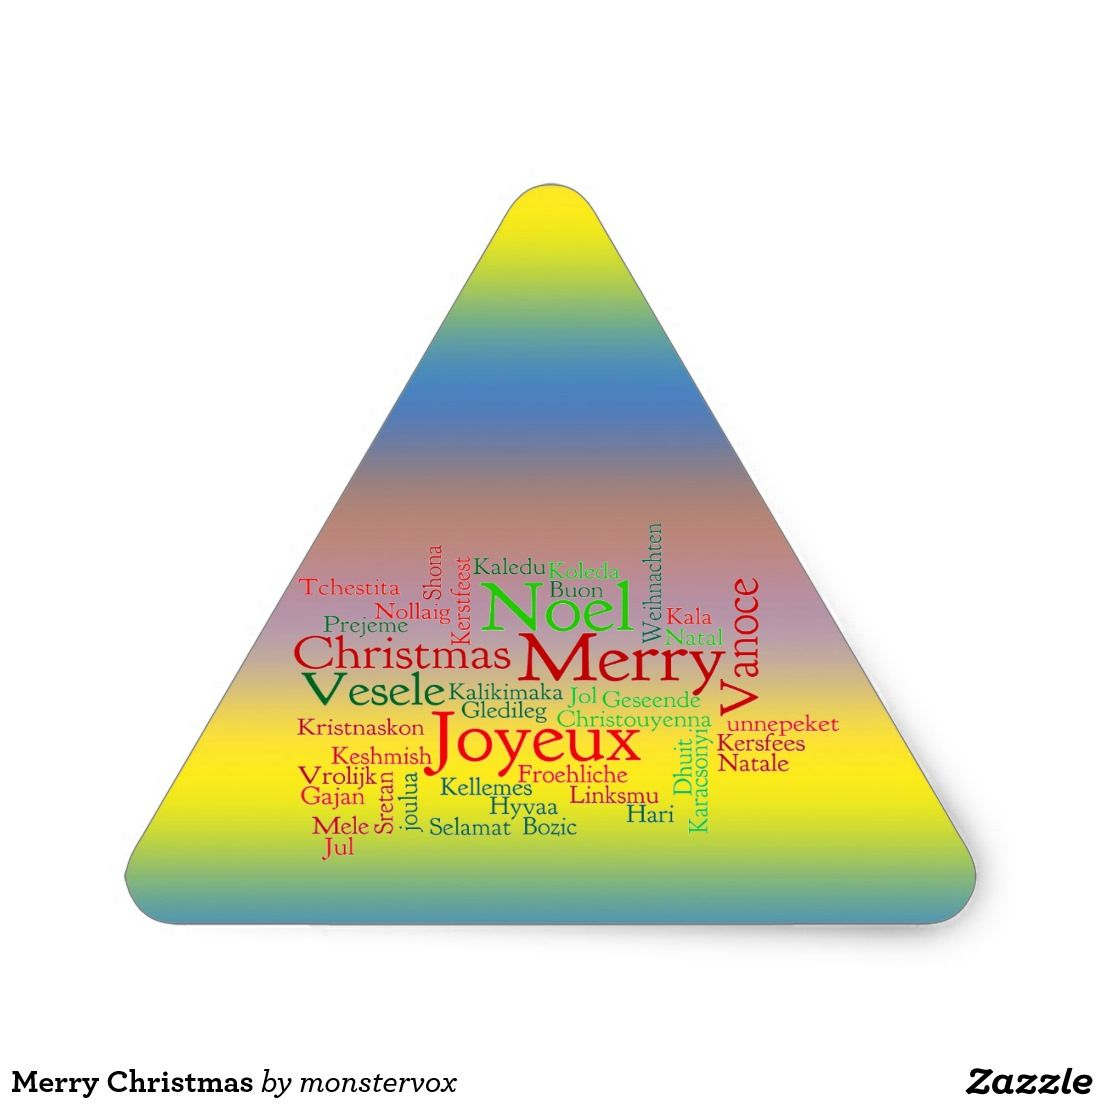 Merry Christmas Triangle Sticker #MerryChristmas #Christmas #Holiday #Sticker #Triangle